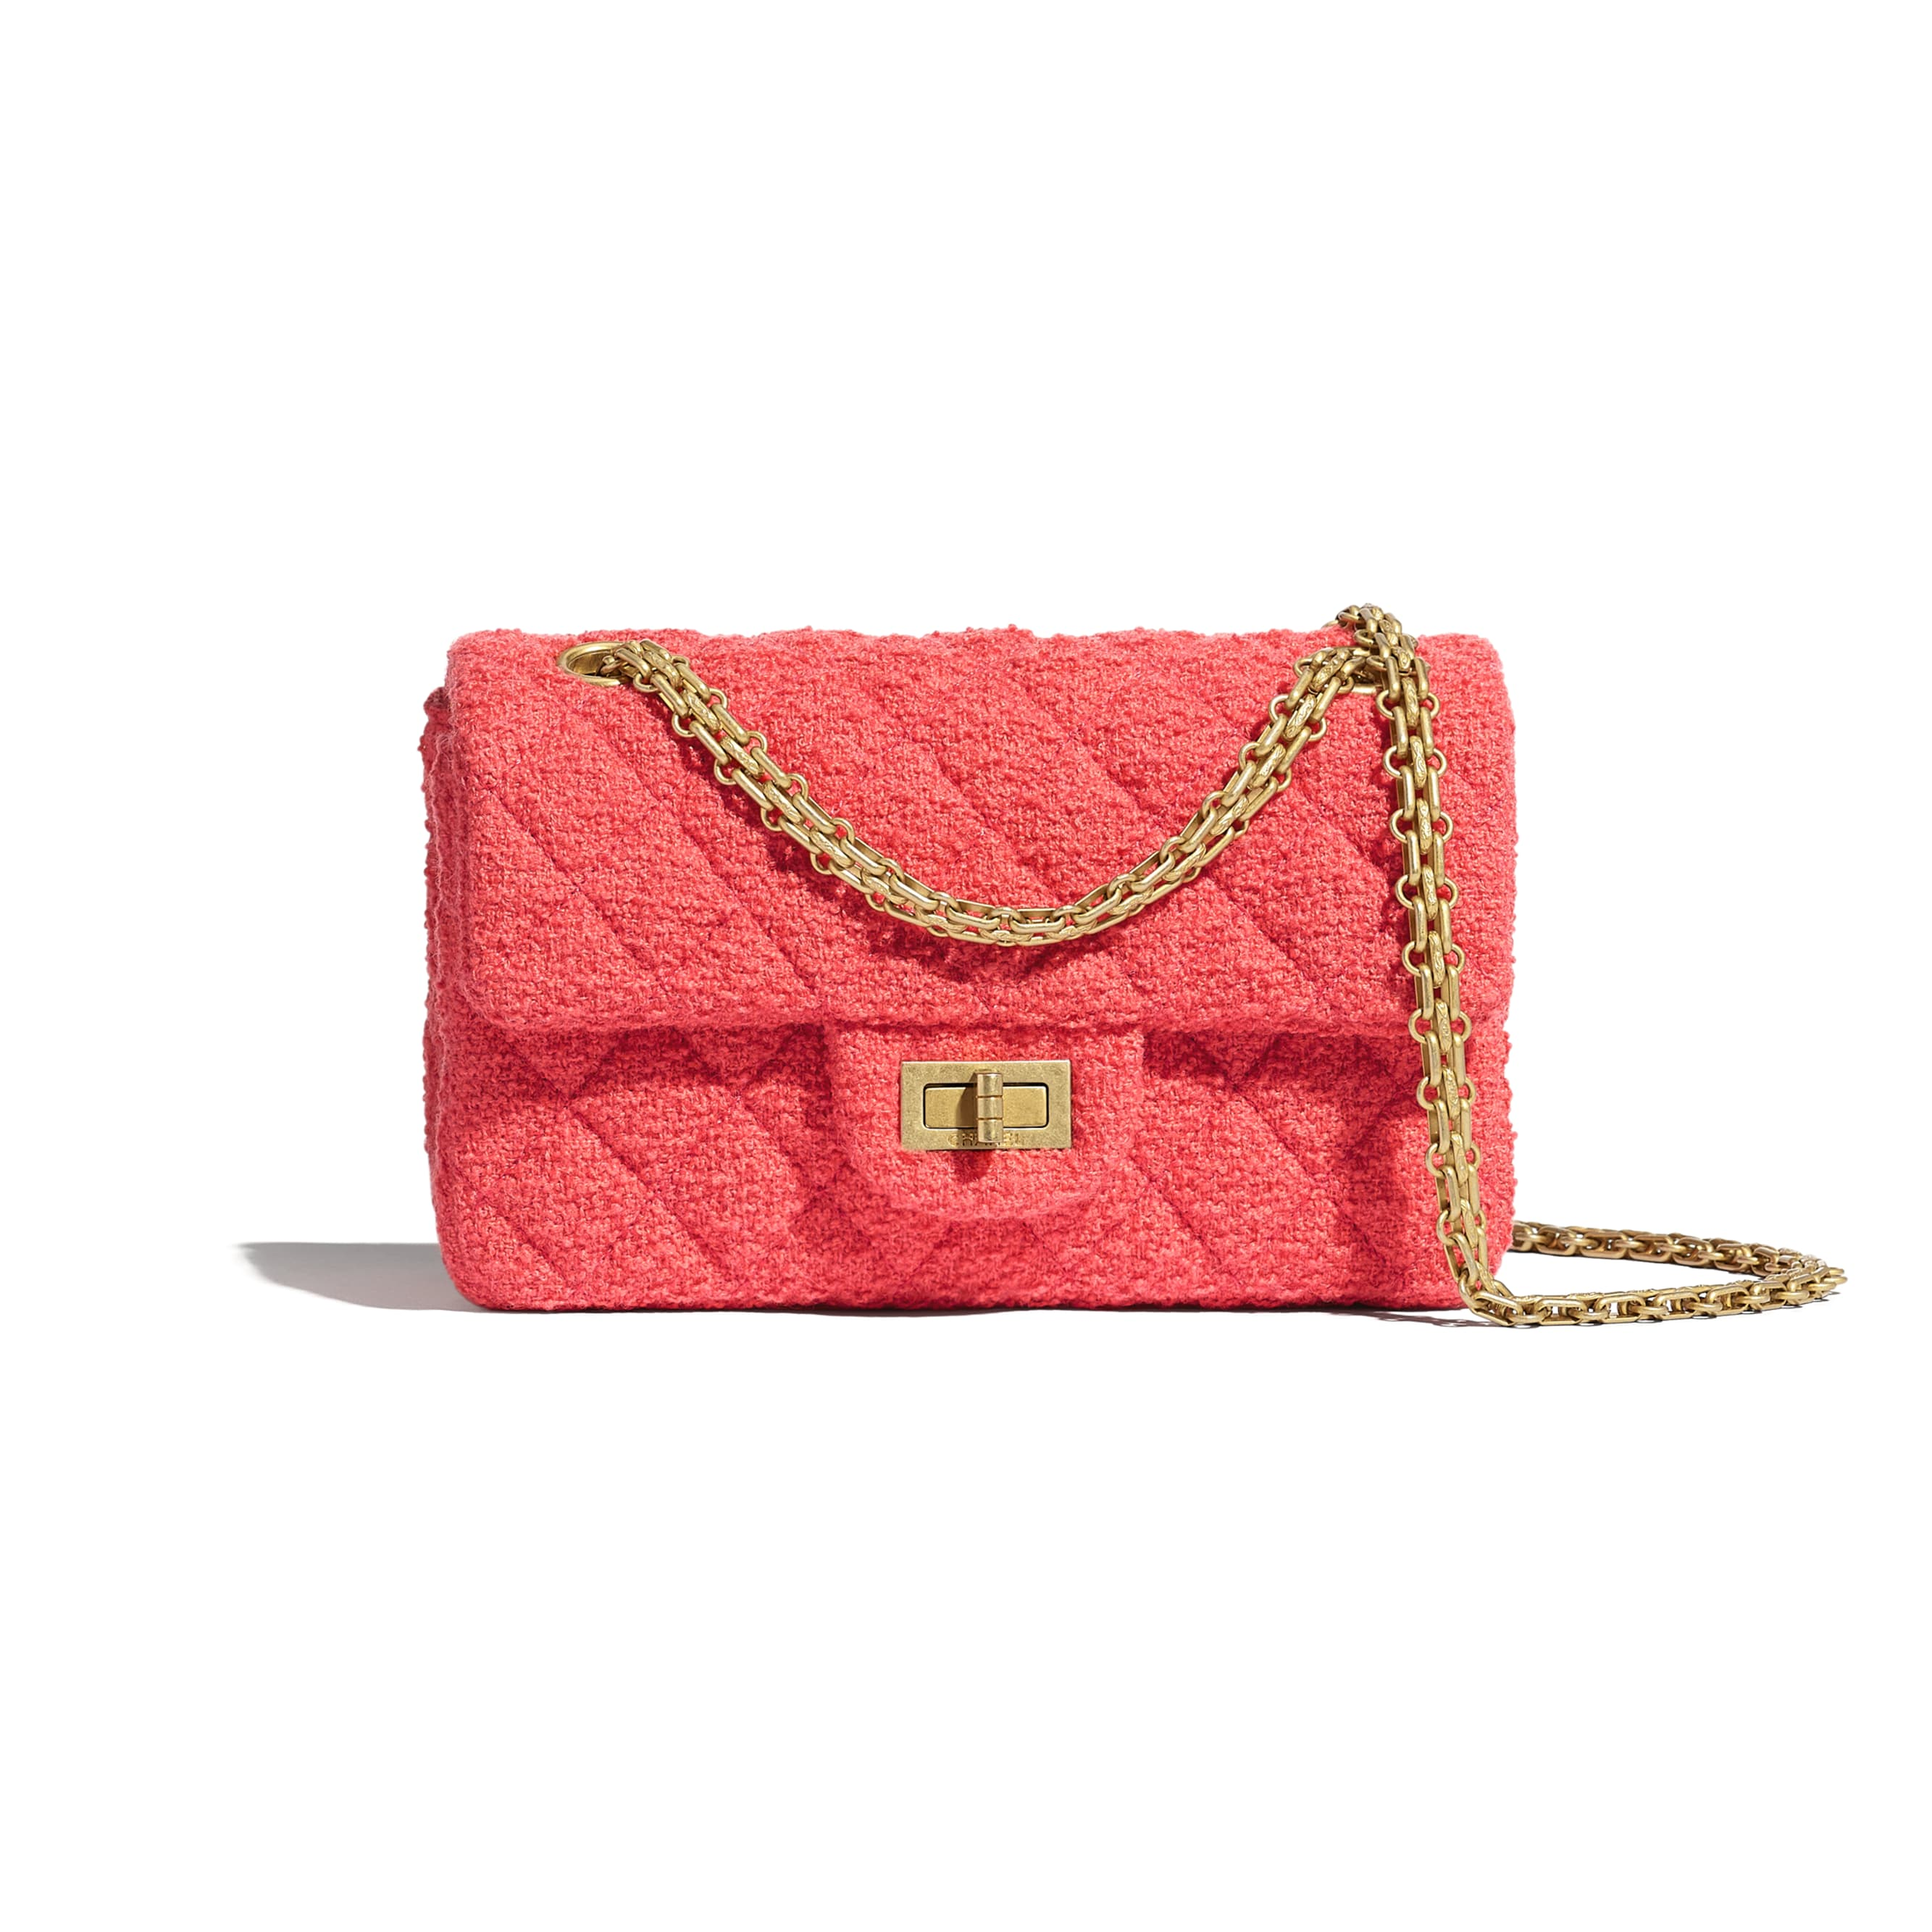 How Much Is Chanel? Chanel Price Guide how much is the cheapest chanel bag